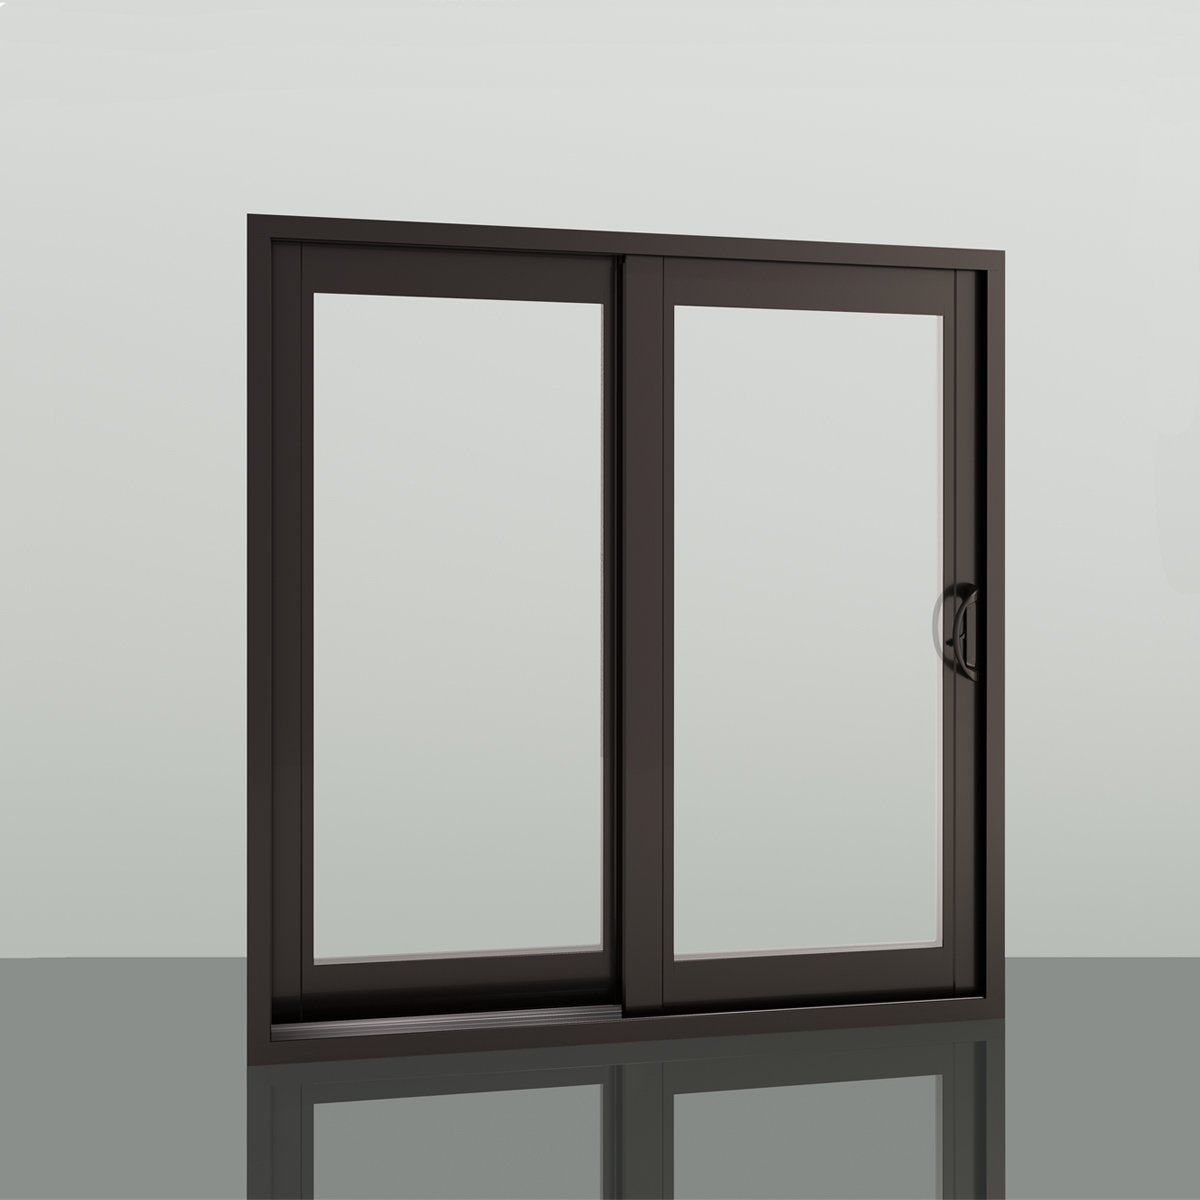 E Screen Blinds Products And Product Information Mi Windows And Doors